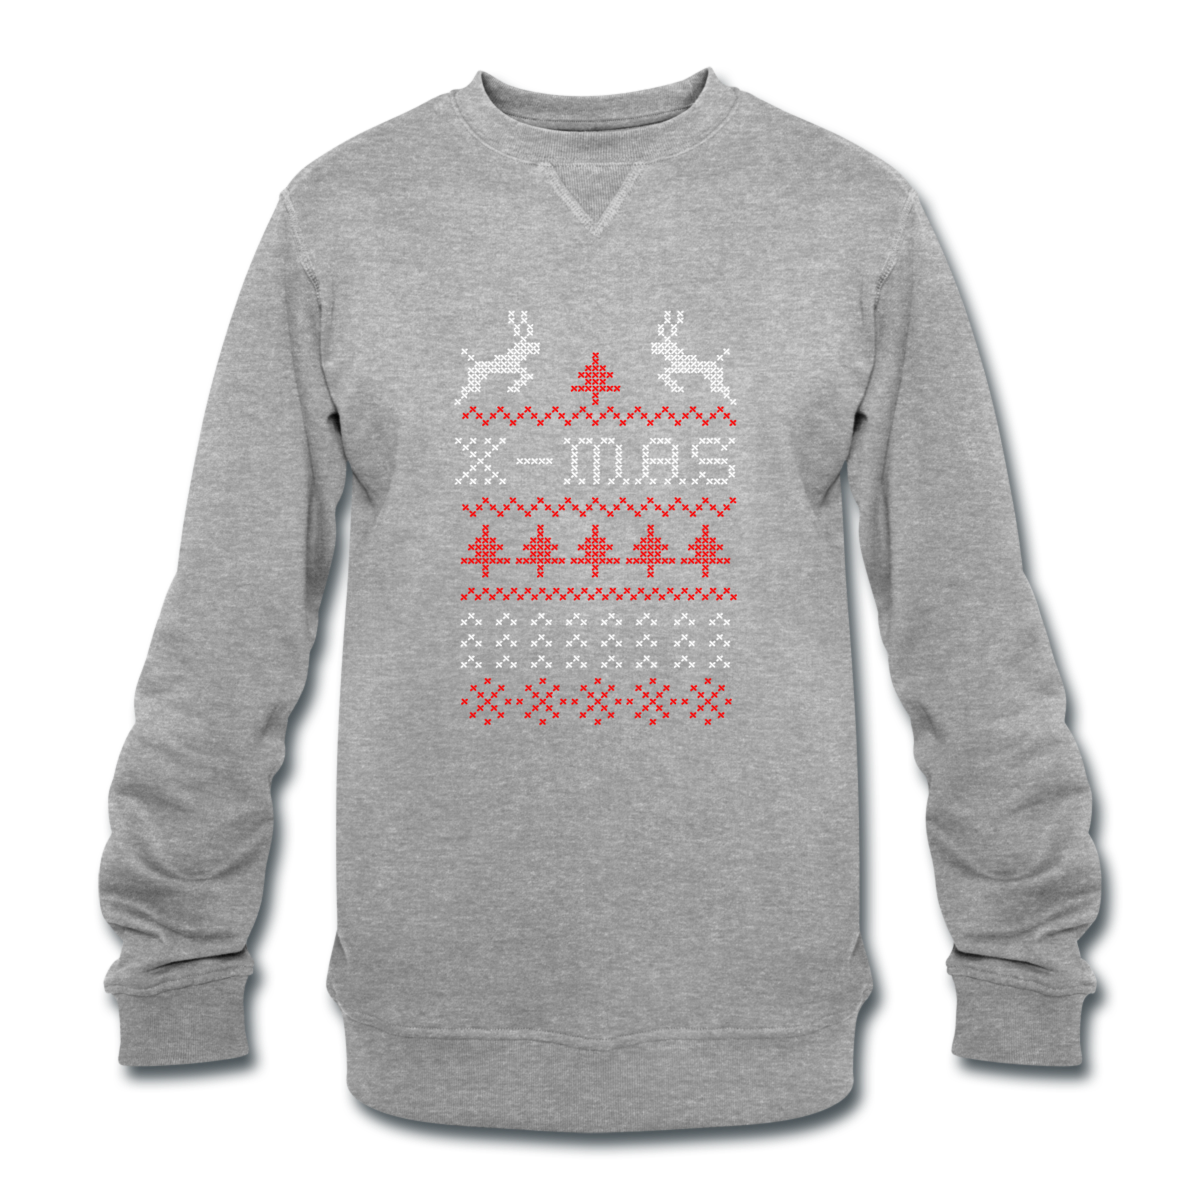 die besten ugly christmas sweater bei spreadshirt. Black Bedroom Furniture Sets. Home Design Ideas